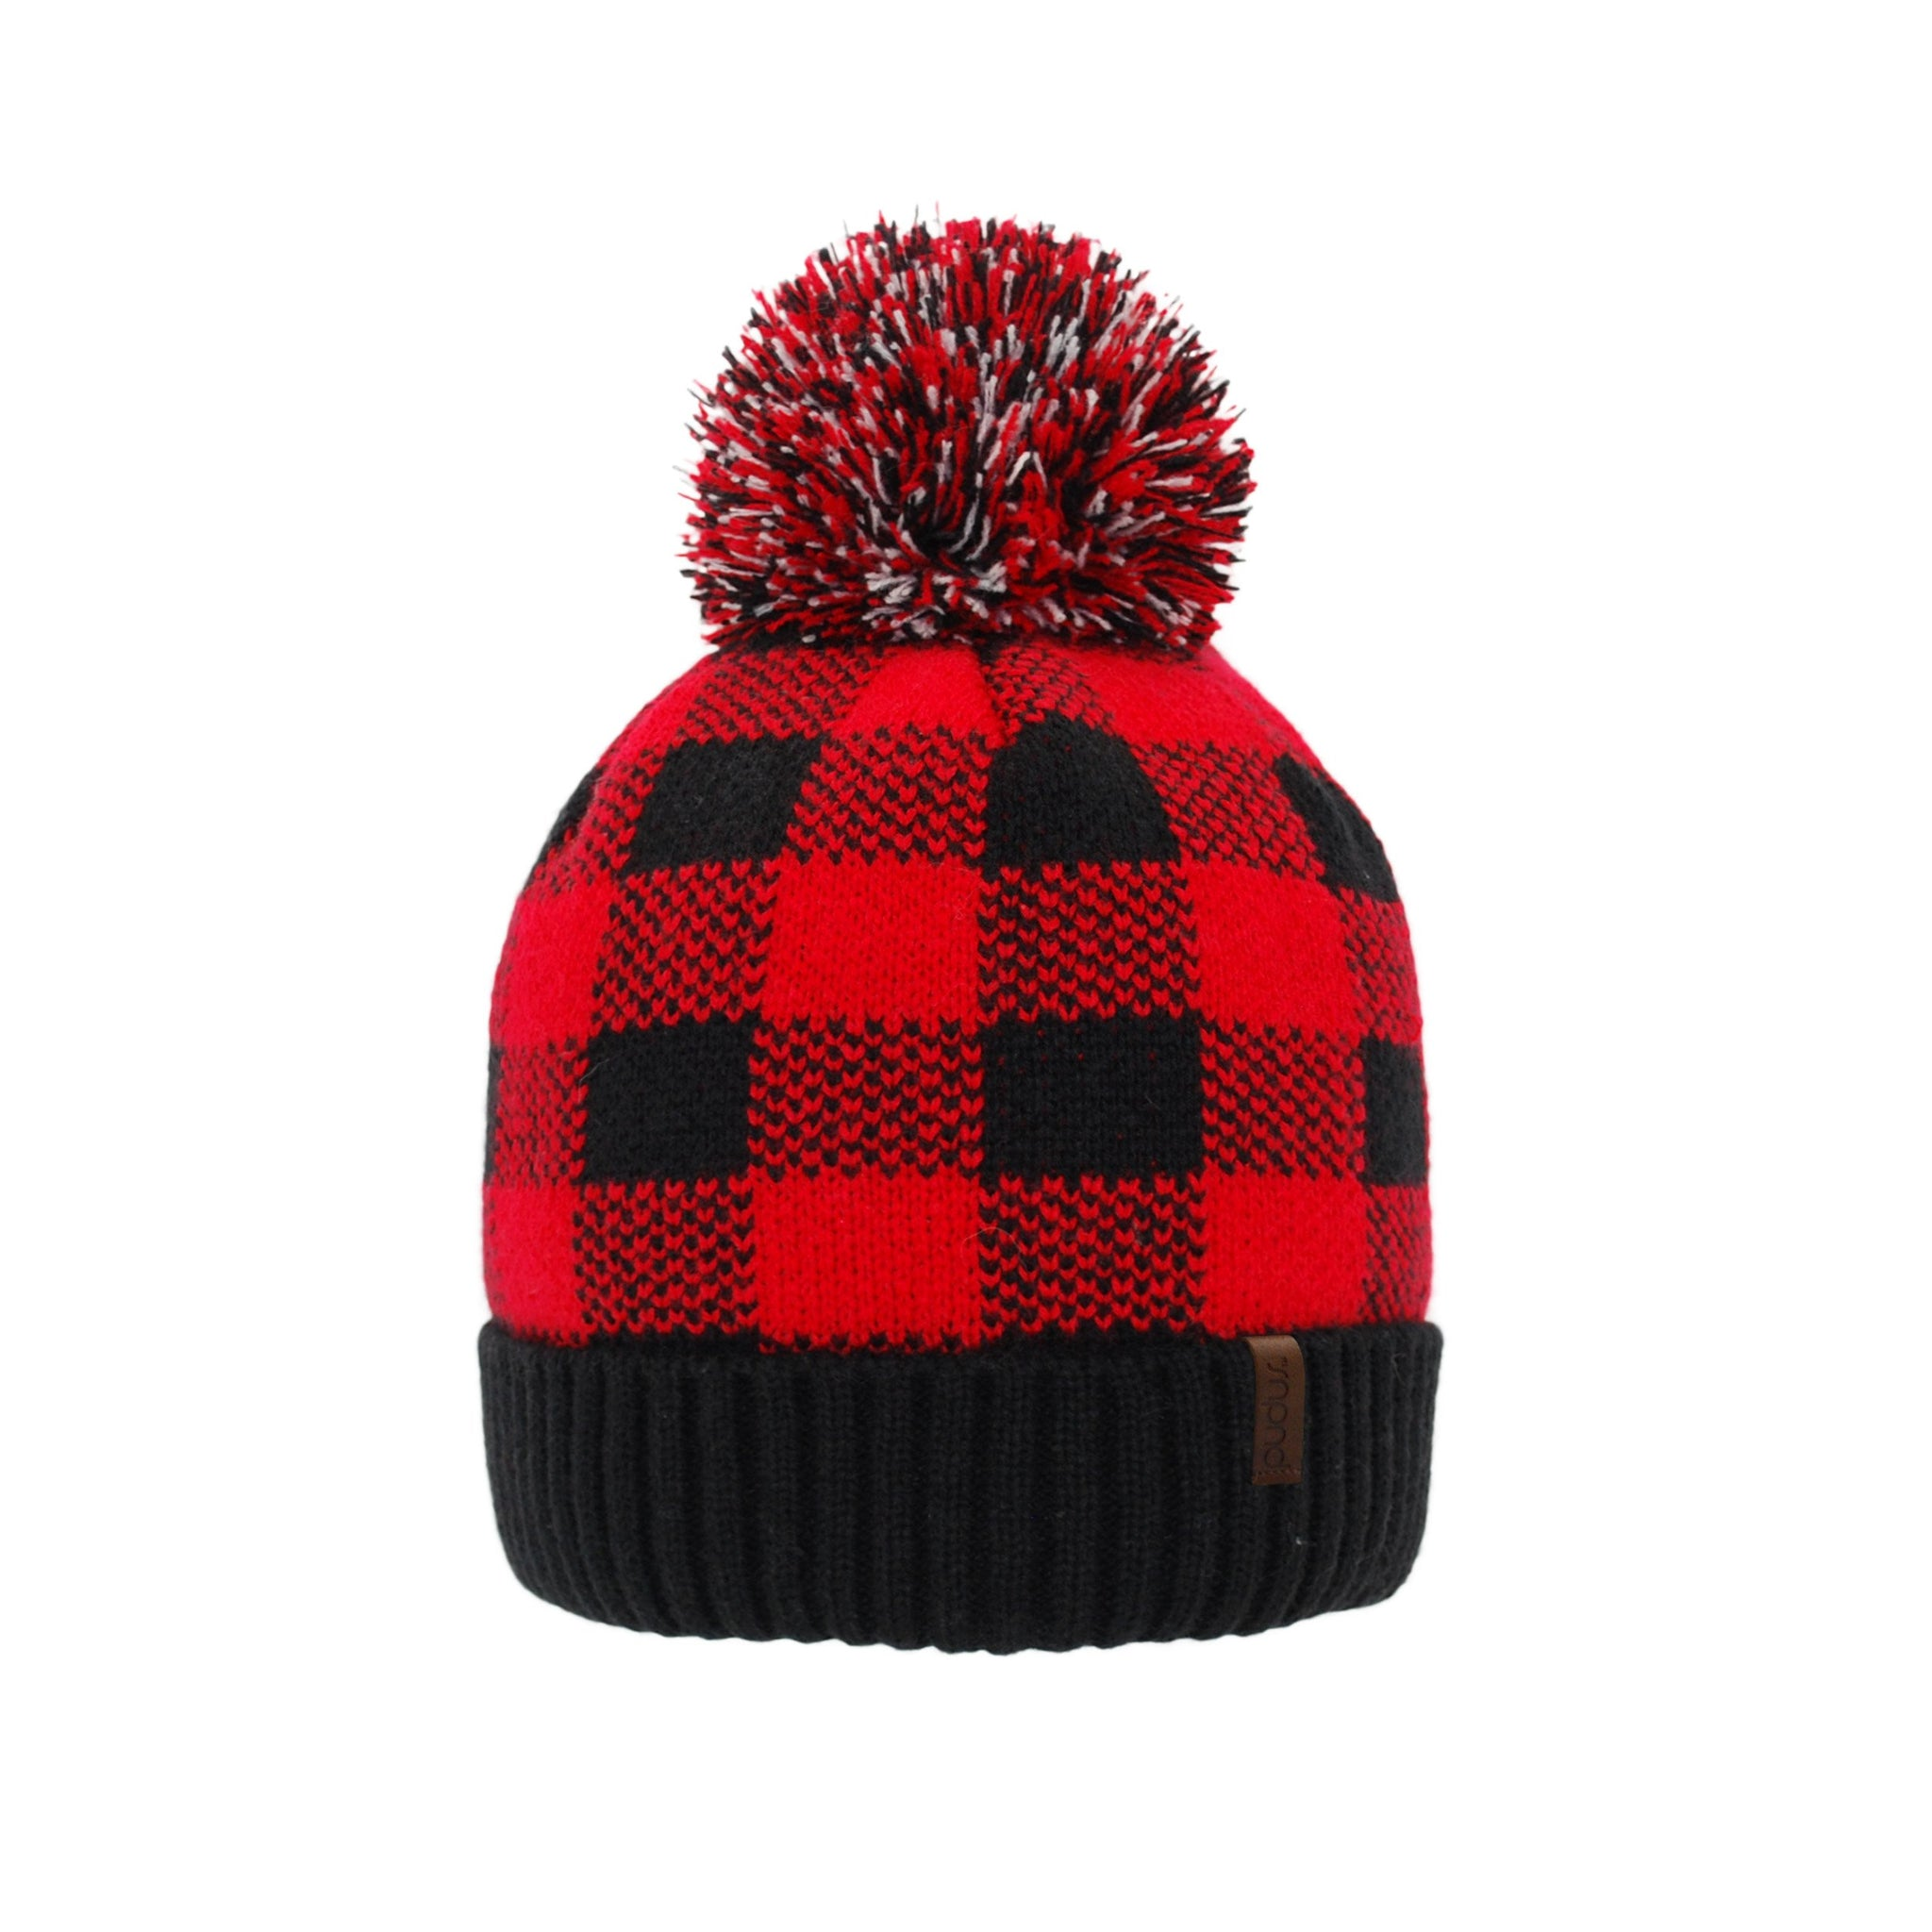 Lumberjack Red with Pom Pom - Hat Adult